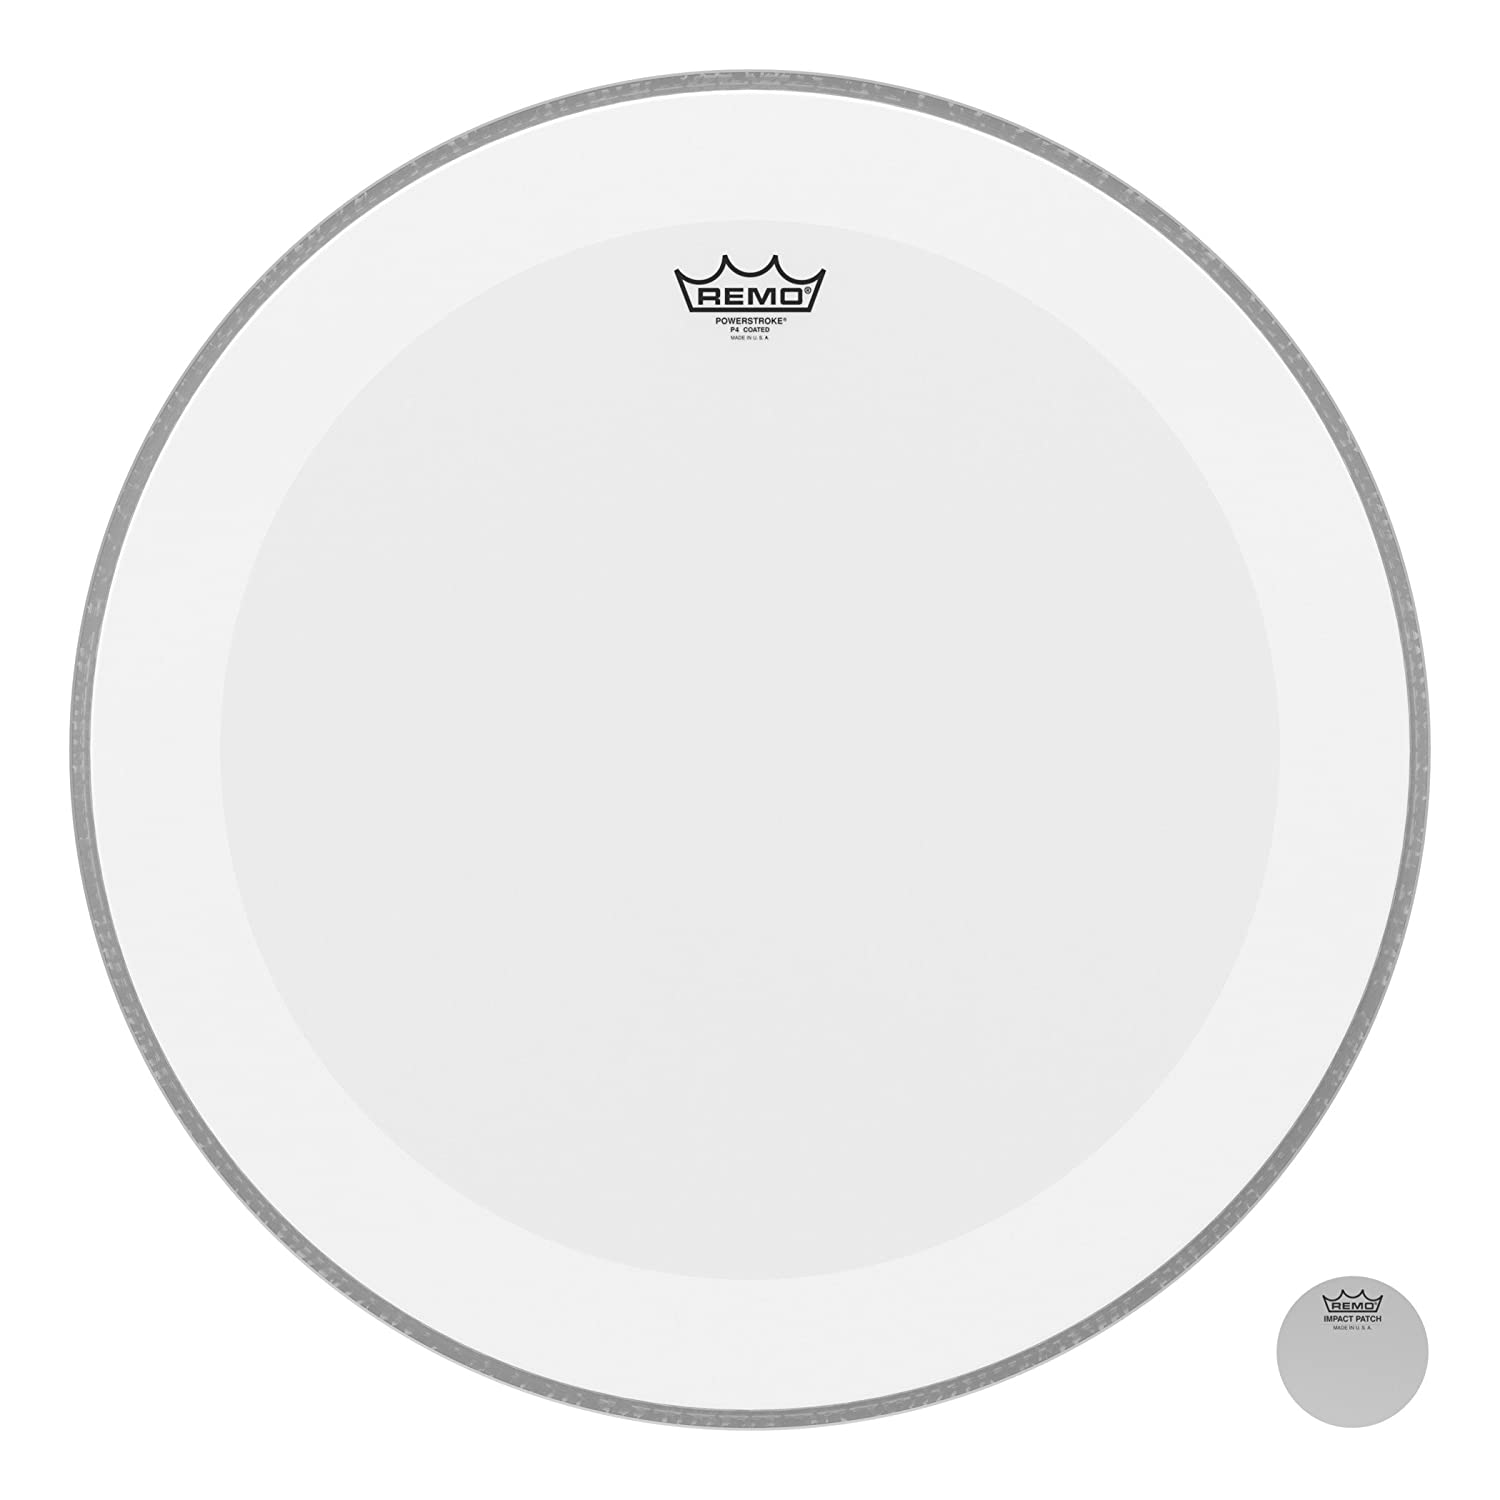 Remo Powerstroke P4 Coated Bass Drumhead, 22